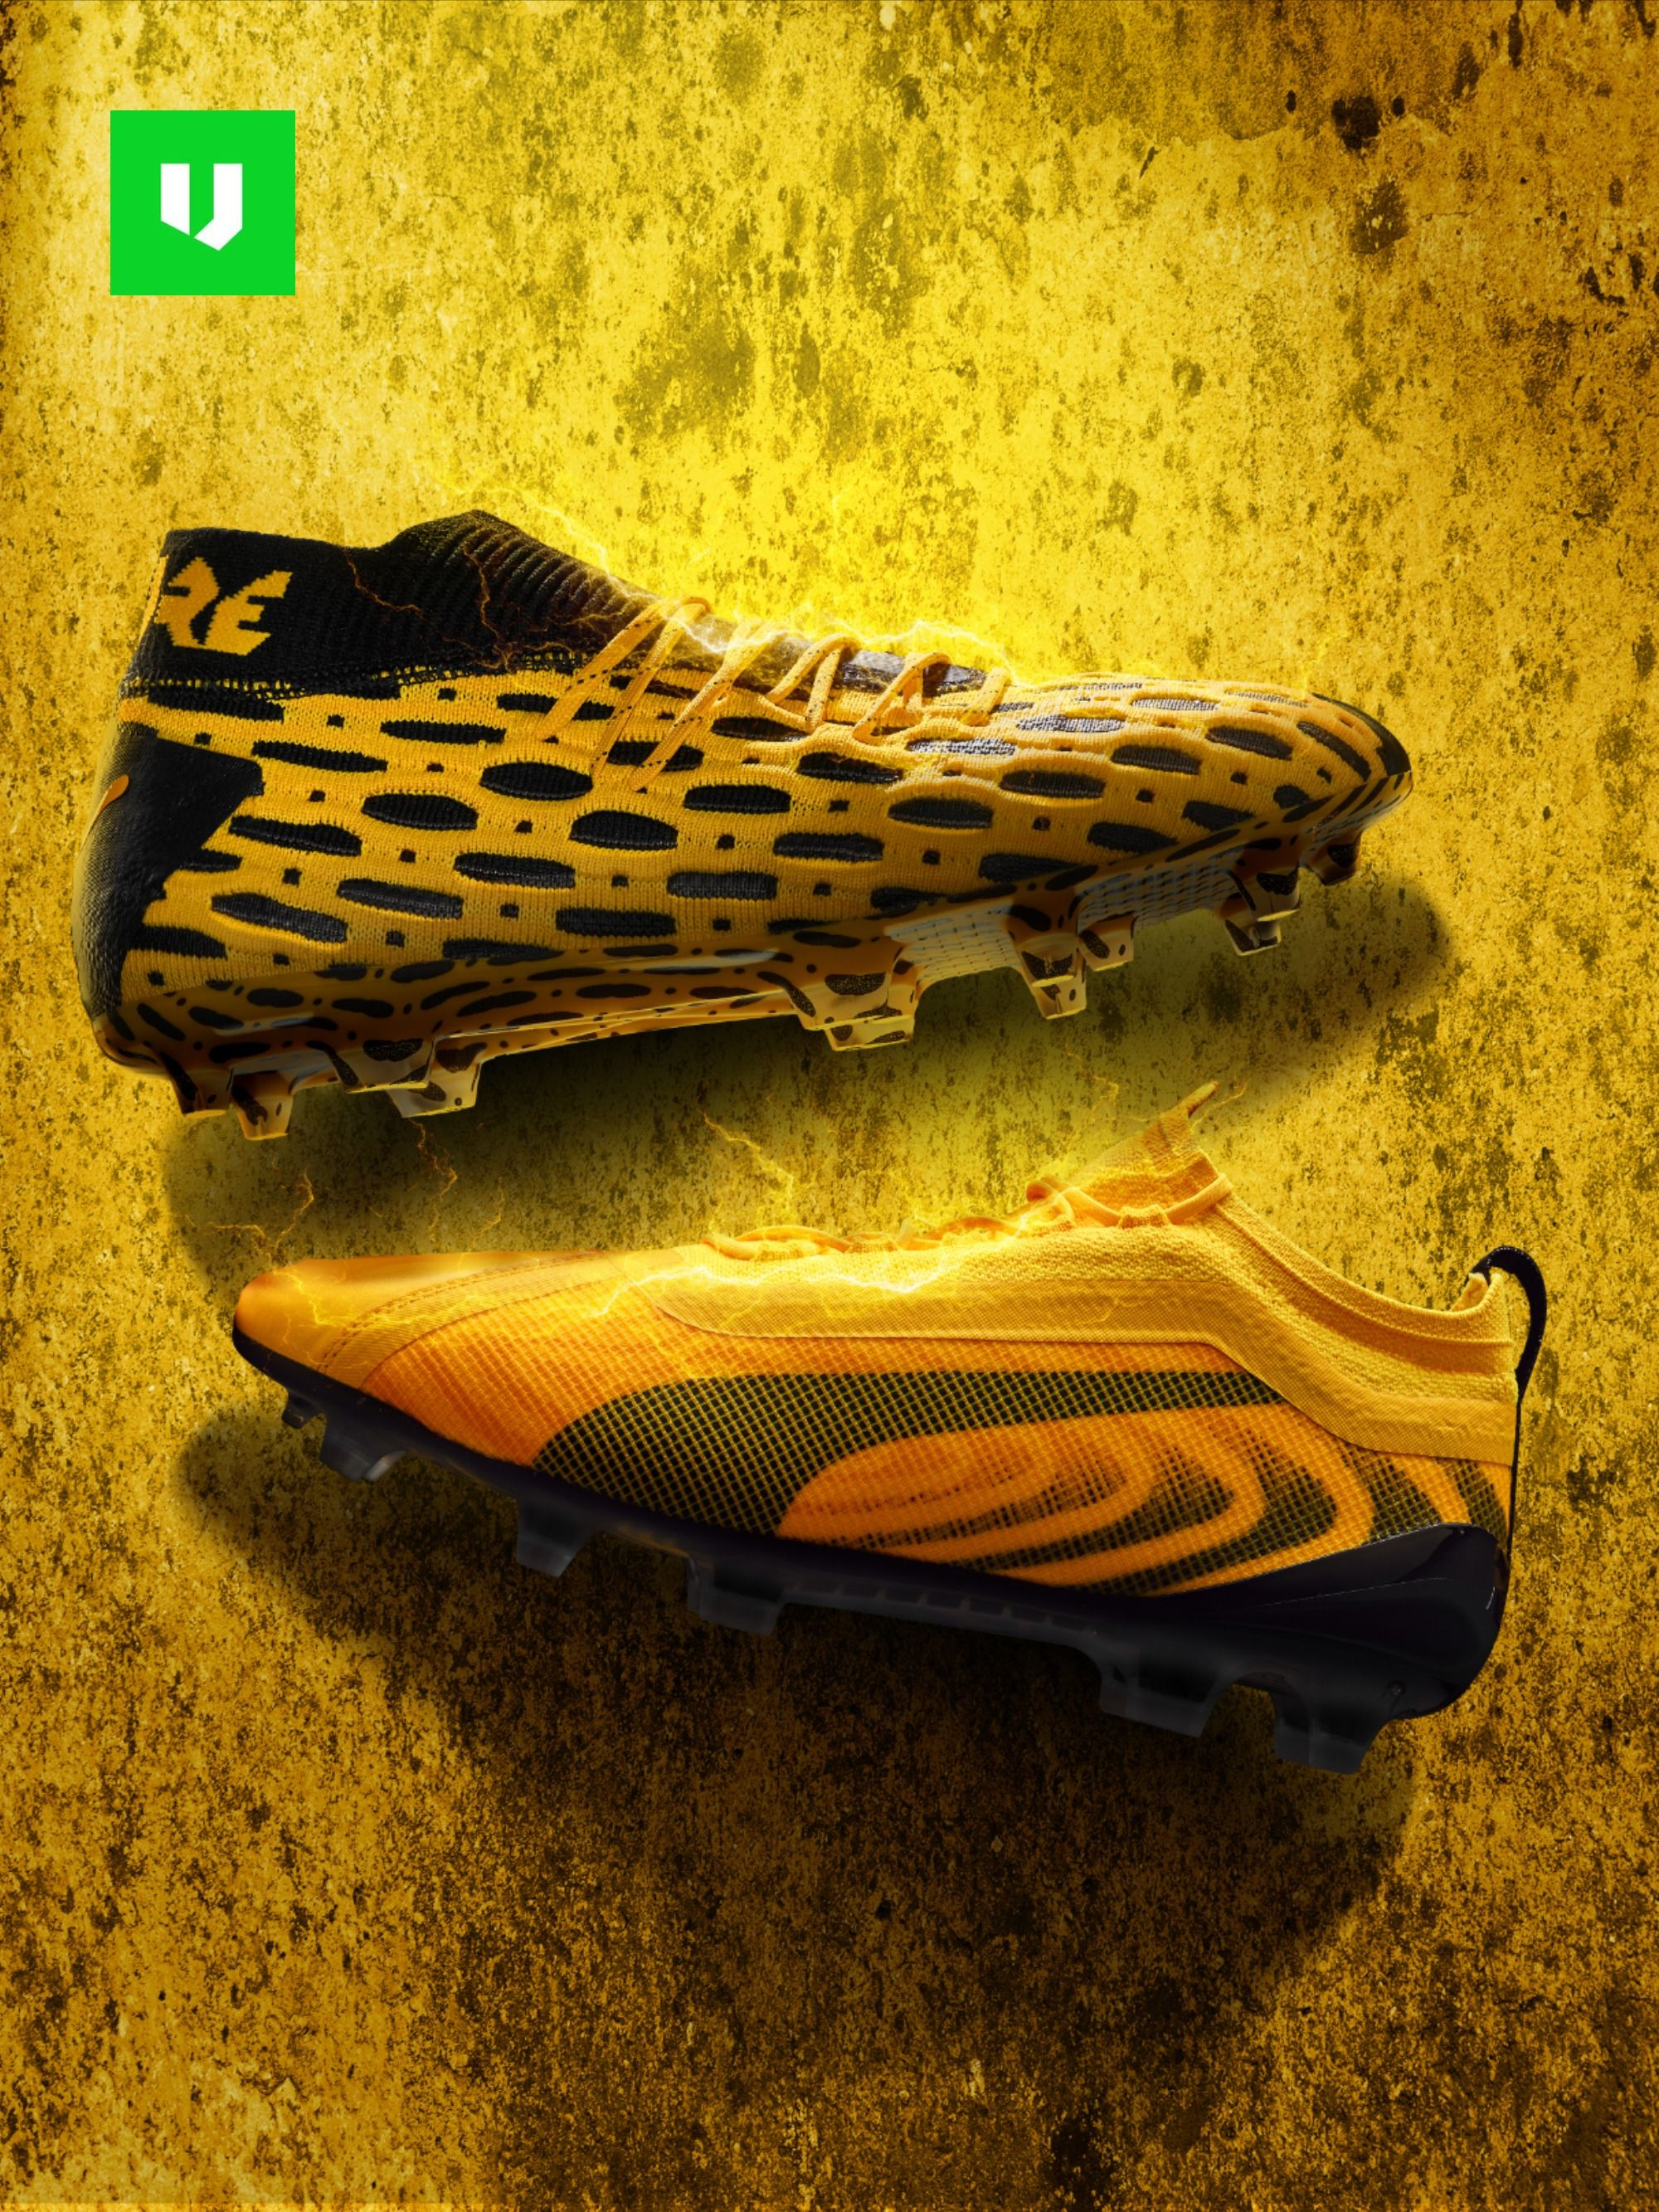 Pre Order The Warm And Radiant New Puma Spark At Unisport Em 2020 Chuteiras